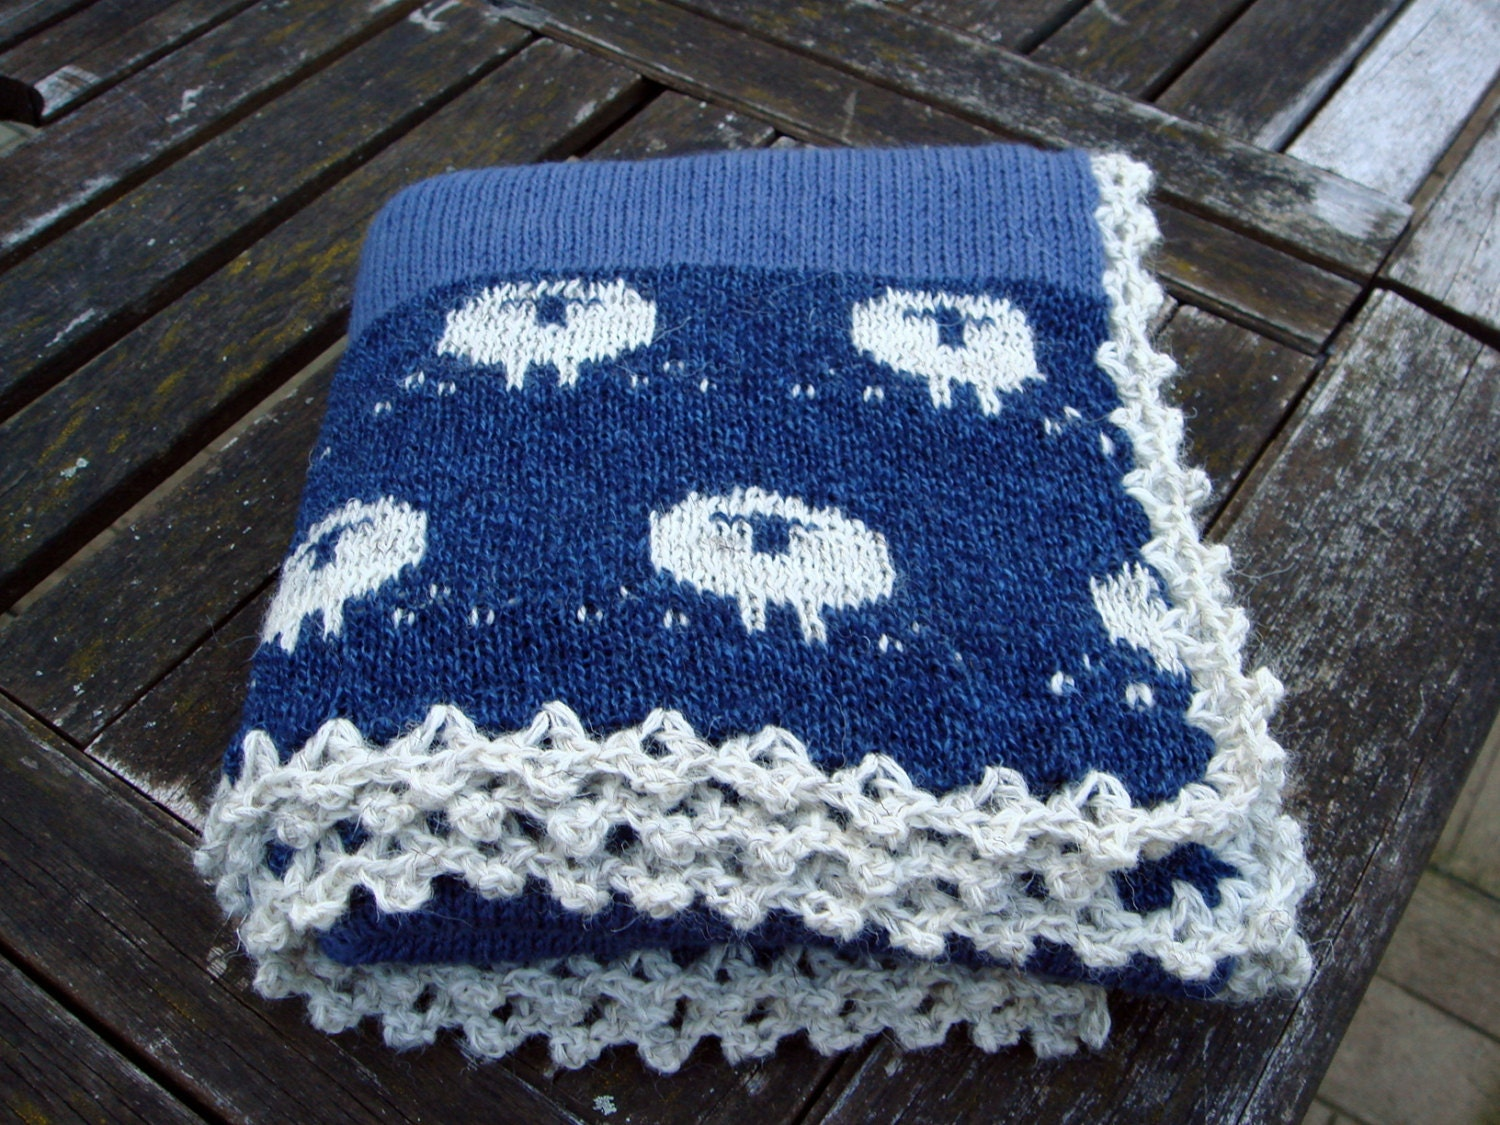 Knitting Pattern For Sheep Blanket : Knitted Lambswool baby blanket Counting Sheep/ by ...